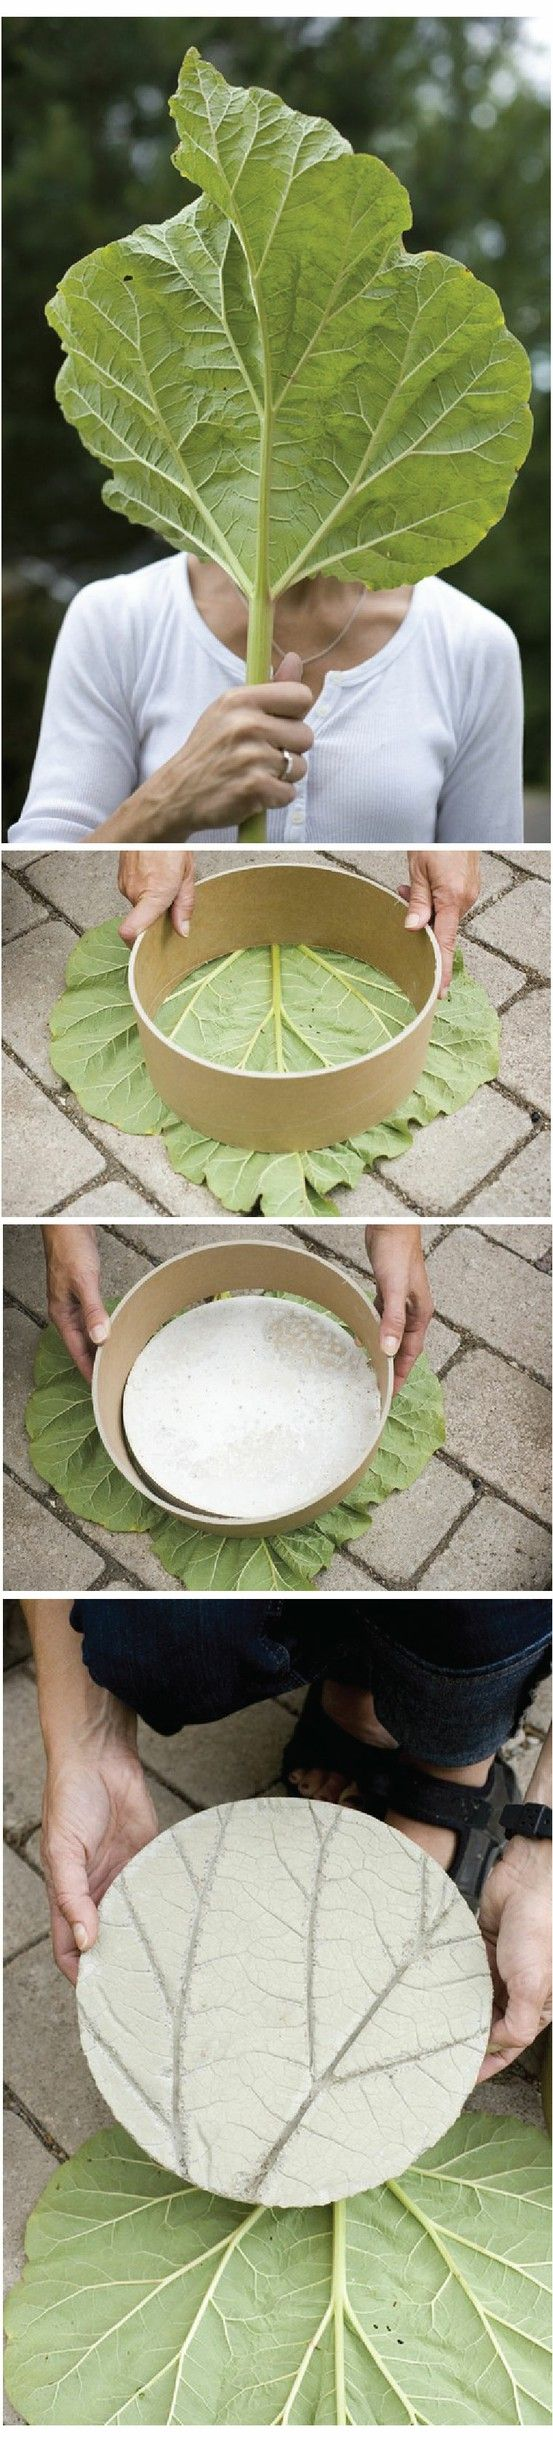 Make stepping stones with leaf impressions.